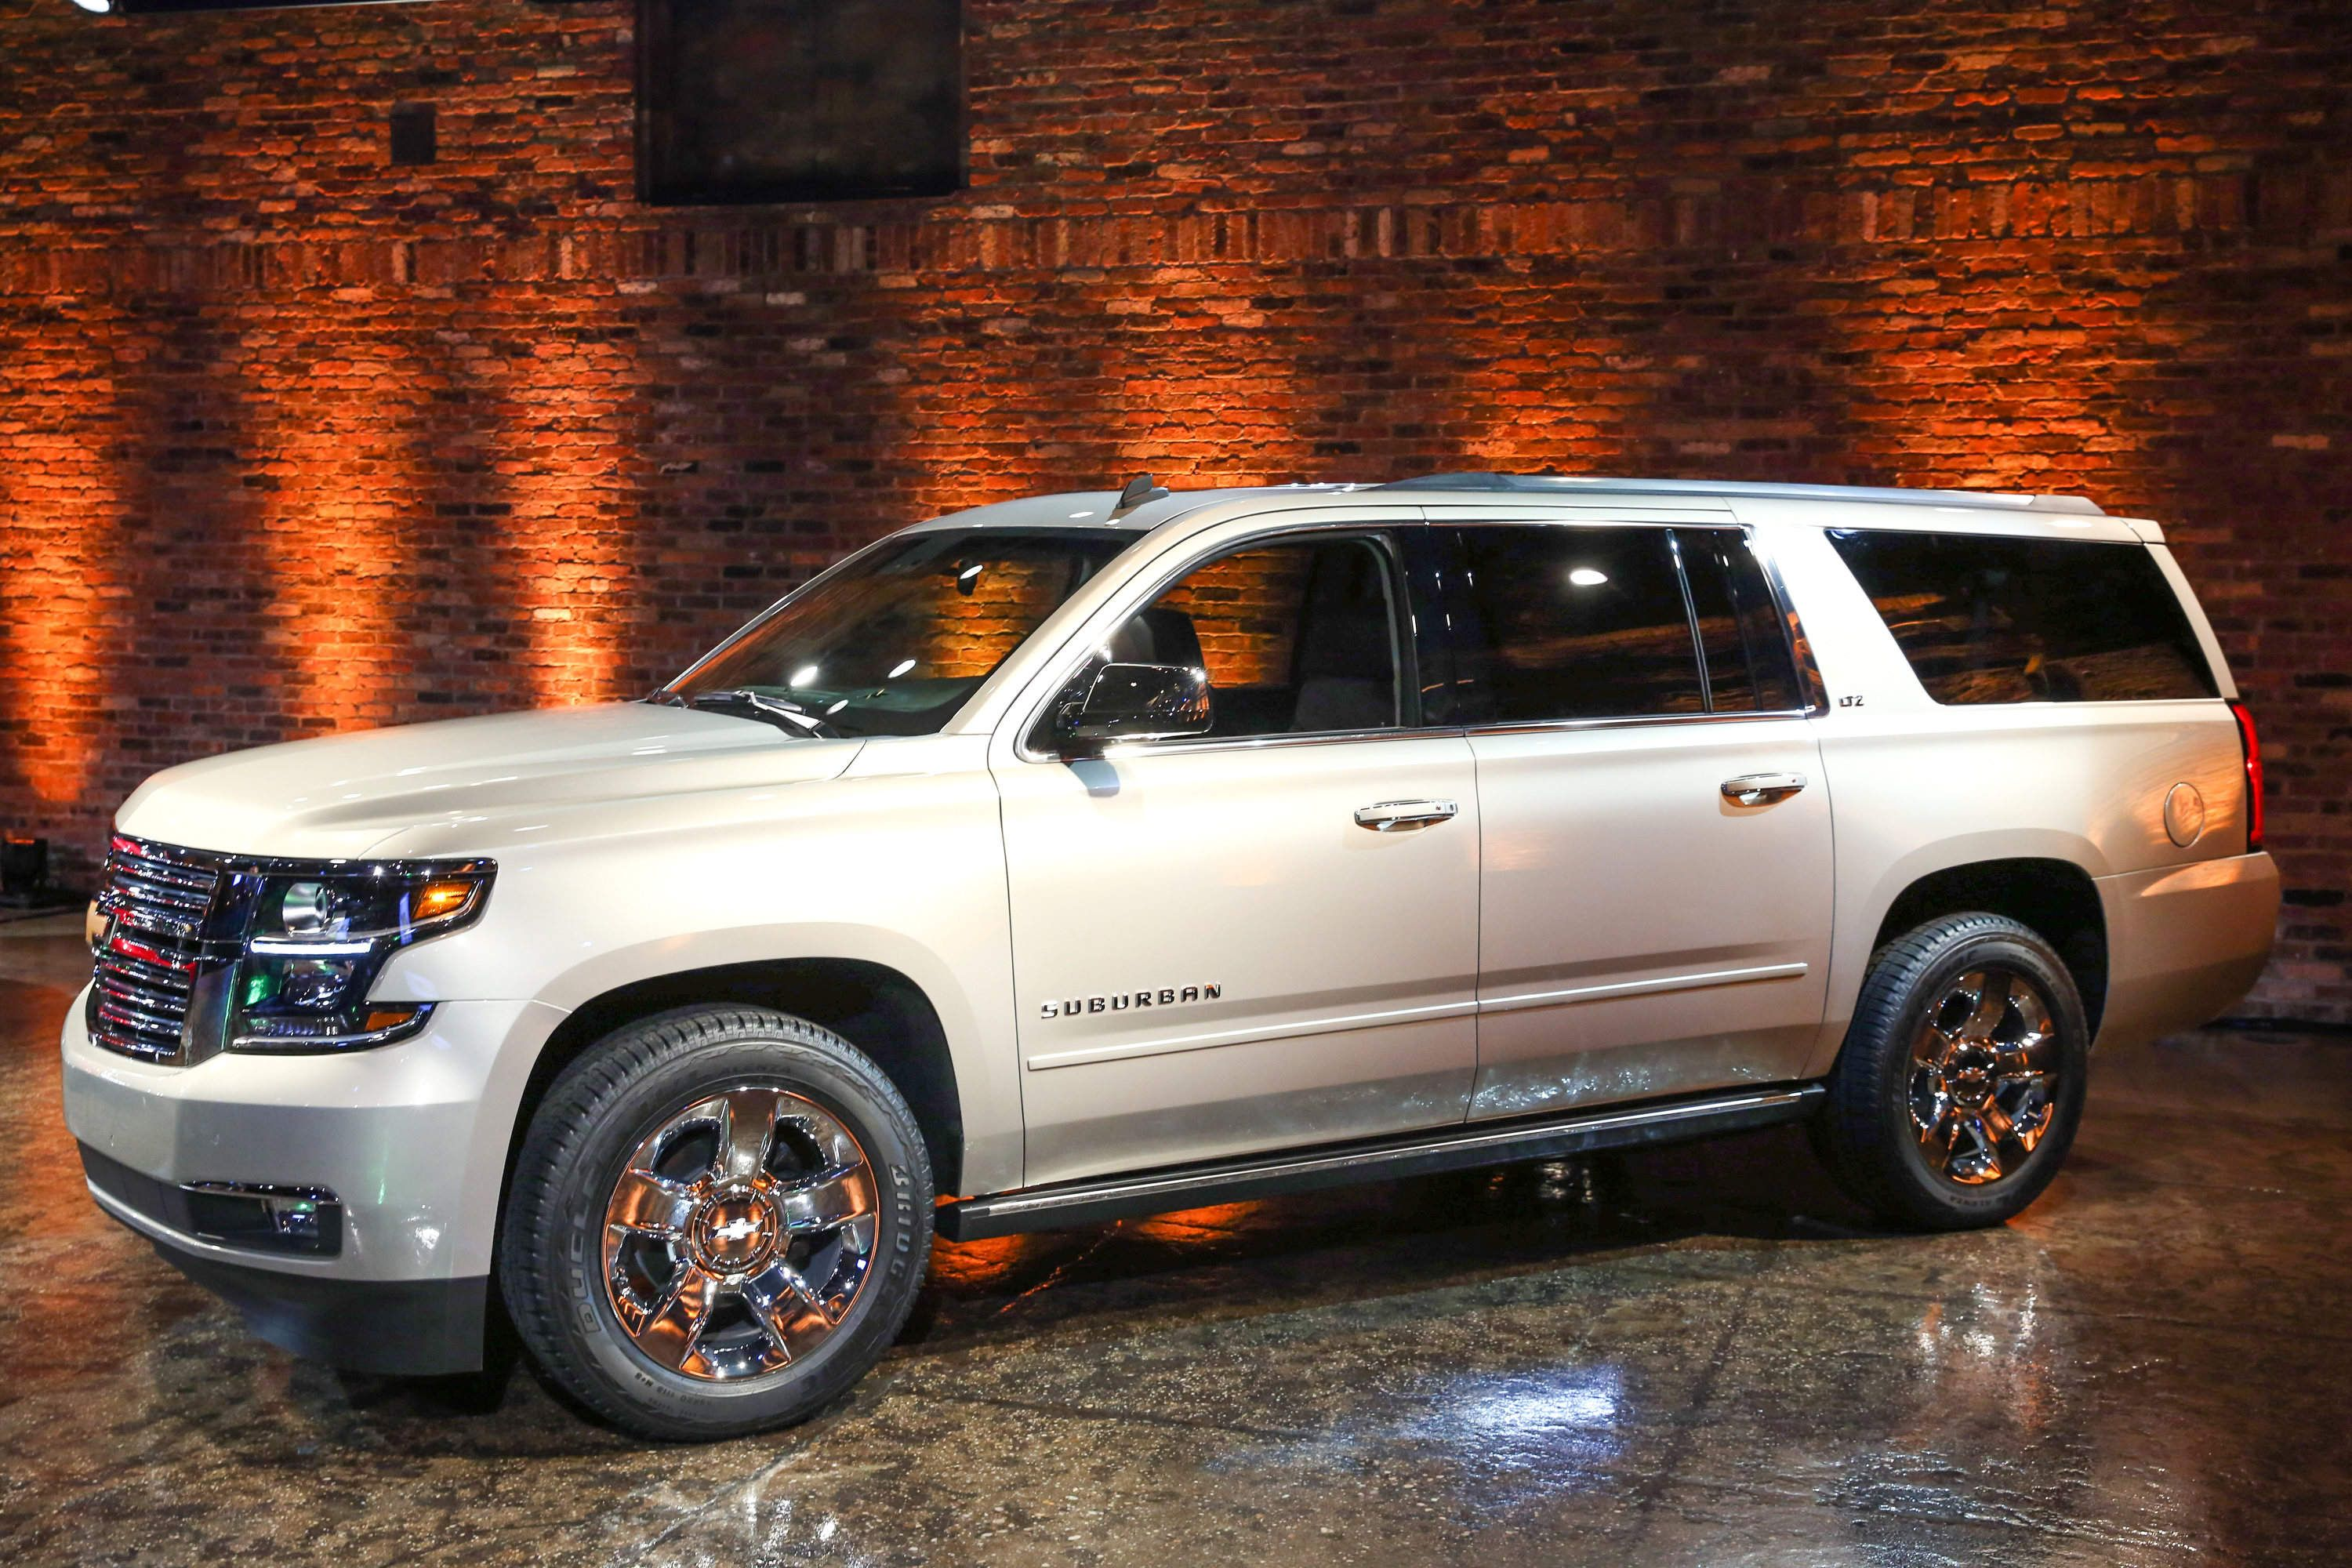 The All New 2015 Chevrolet Suburban Represents The 80th Anniversary Con Imagenes Autos Lujosos Autos Deportivos Autos